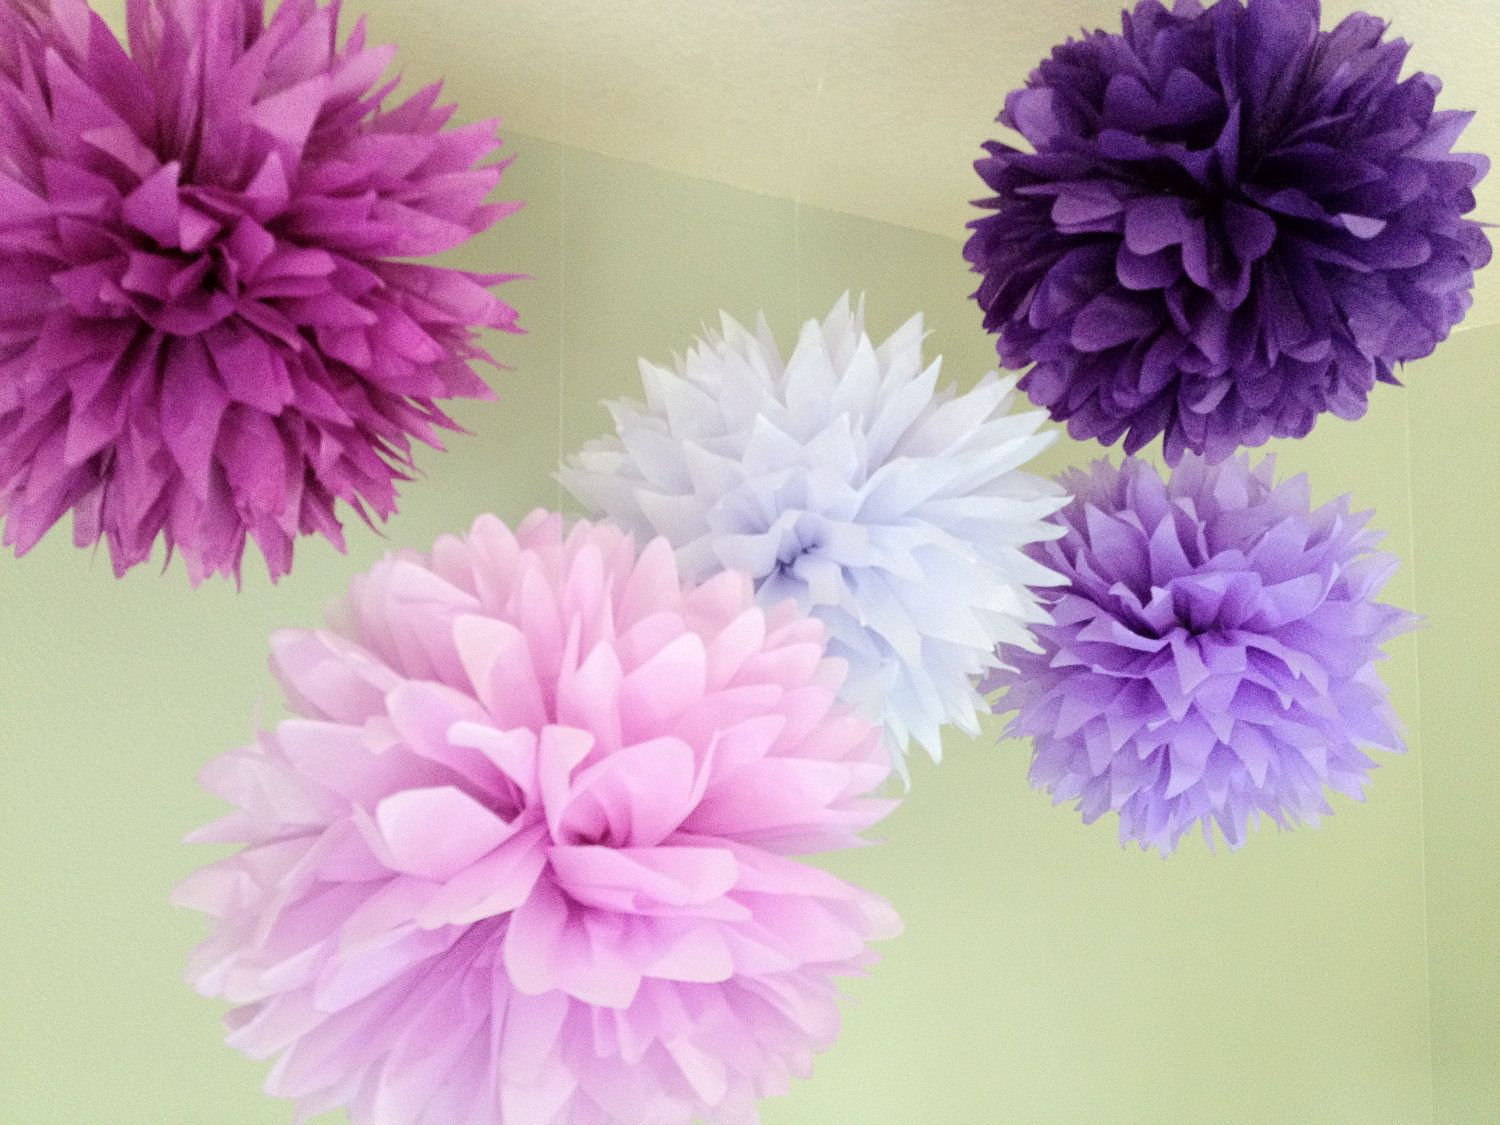 Imperial Purple 5 Tissue Paper Pom Poms Decoration Shades Of